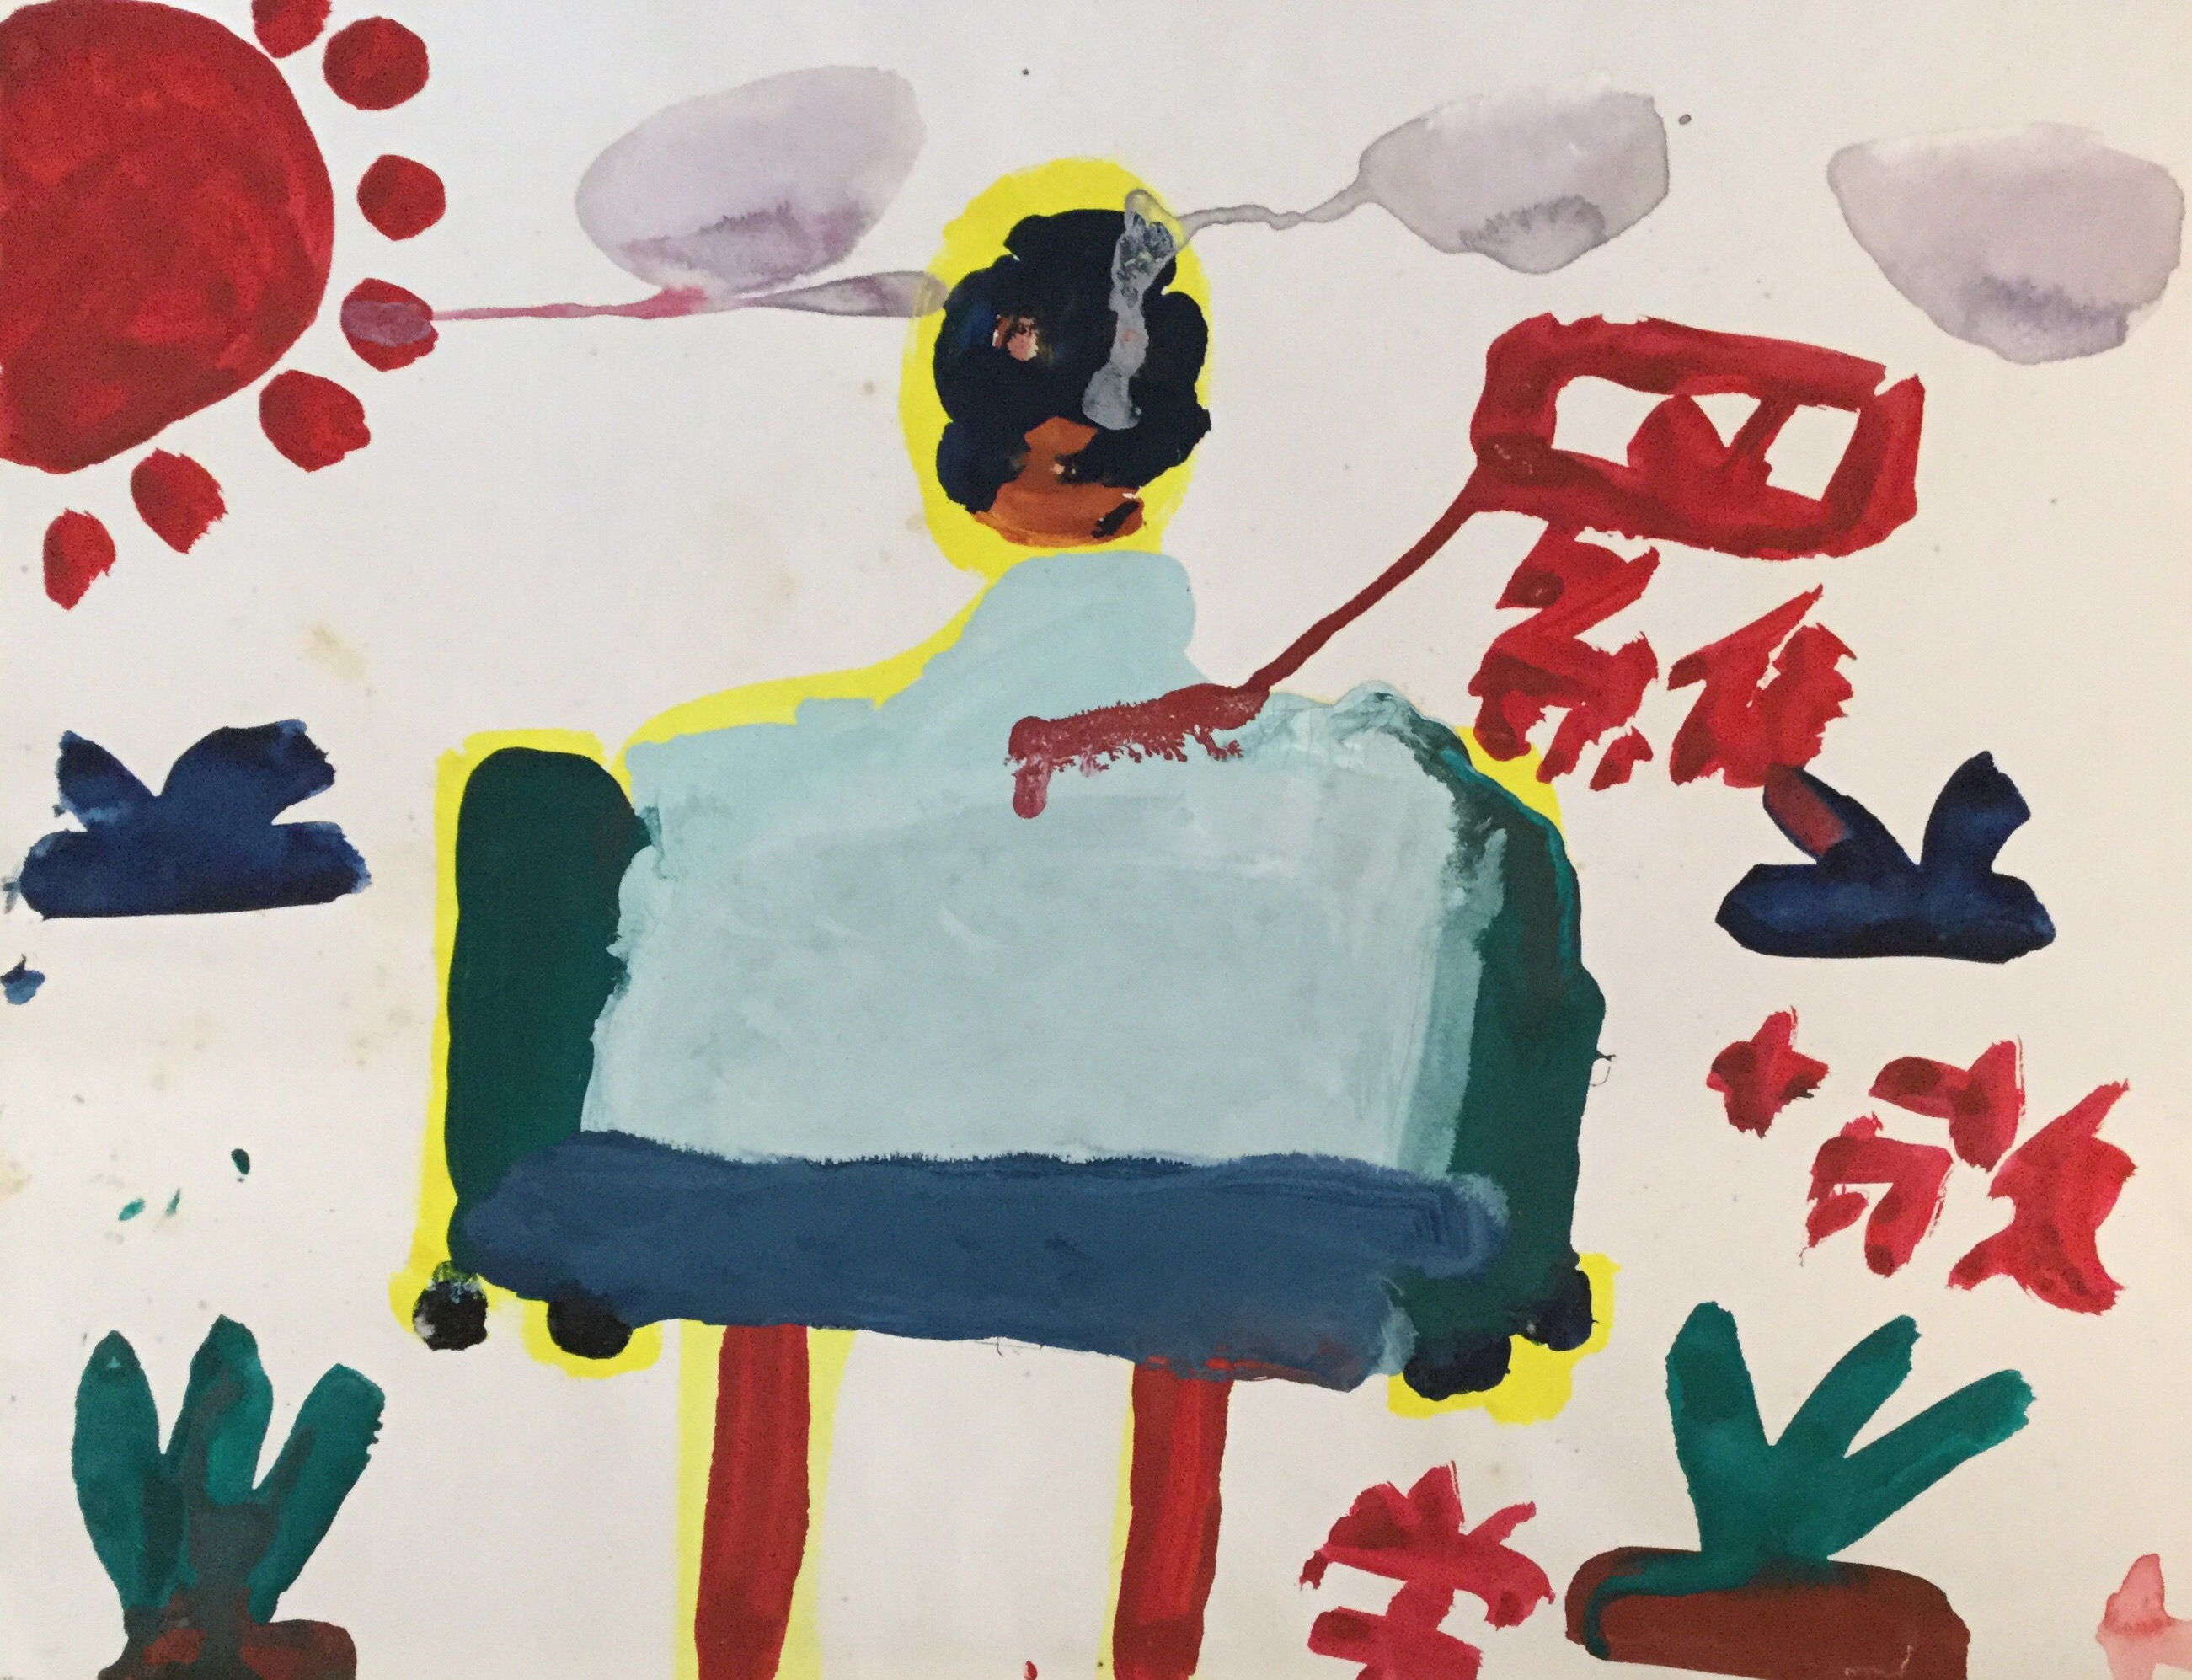 From 1988 to 1991, the artists of Art In the Camps visited the detention camp in Whitehead every week to conduct art education with the children inside. This painting was created by one of them.